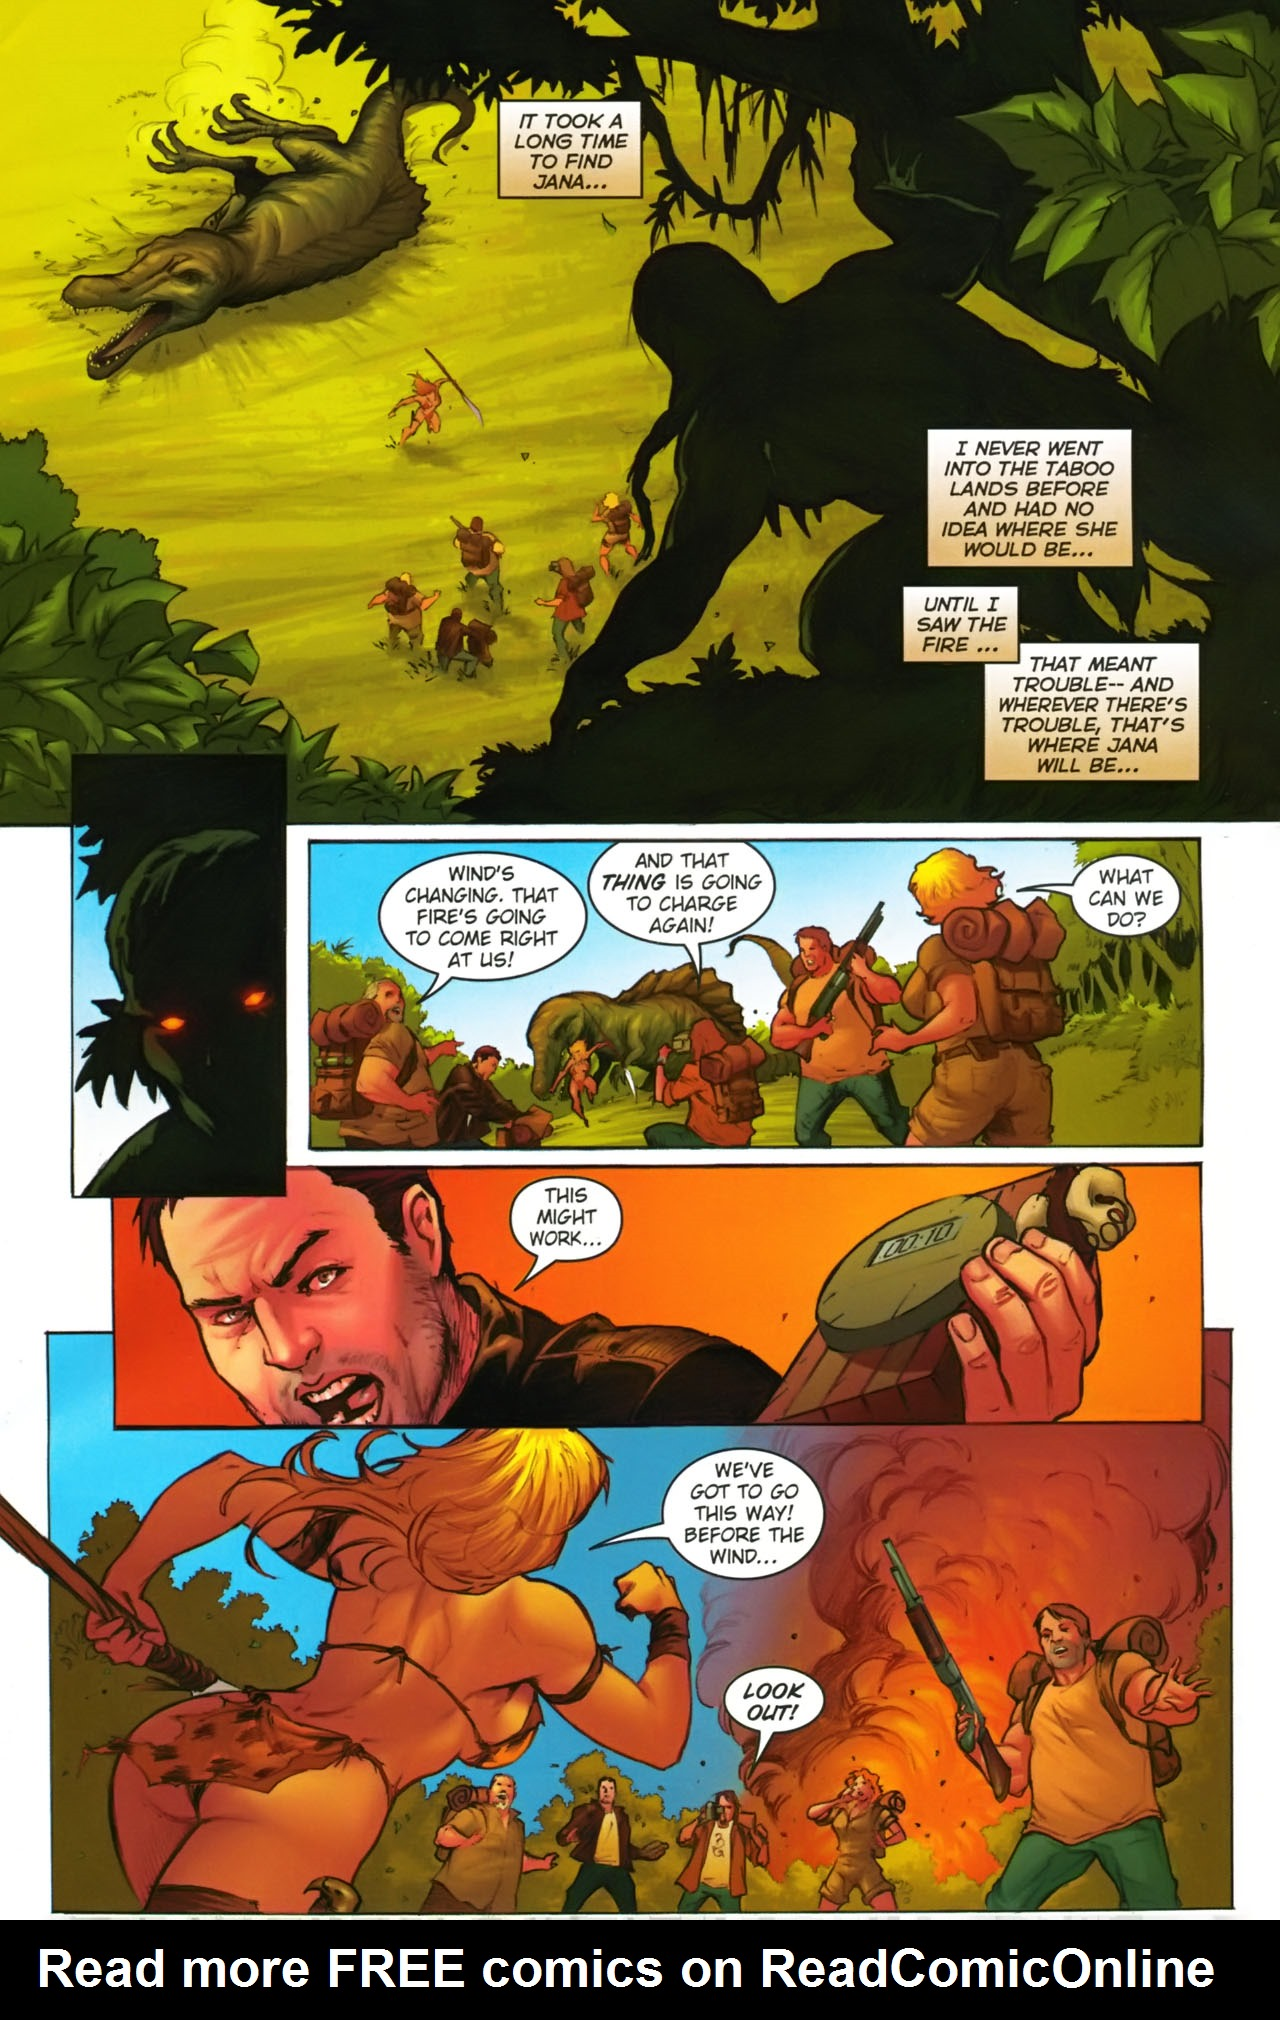 Read online Jungle Girl comic -  Issue #2 - 11